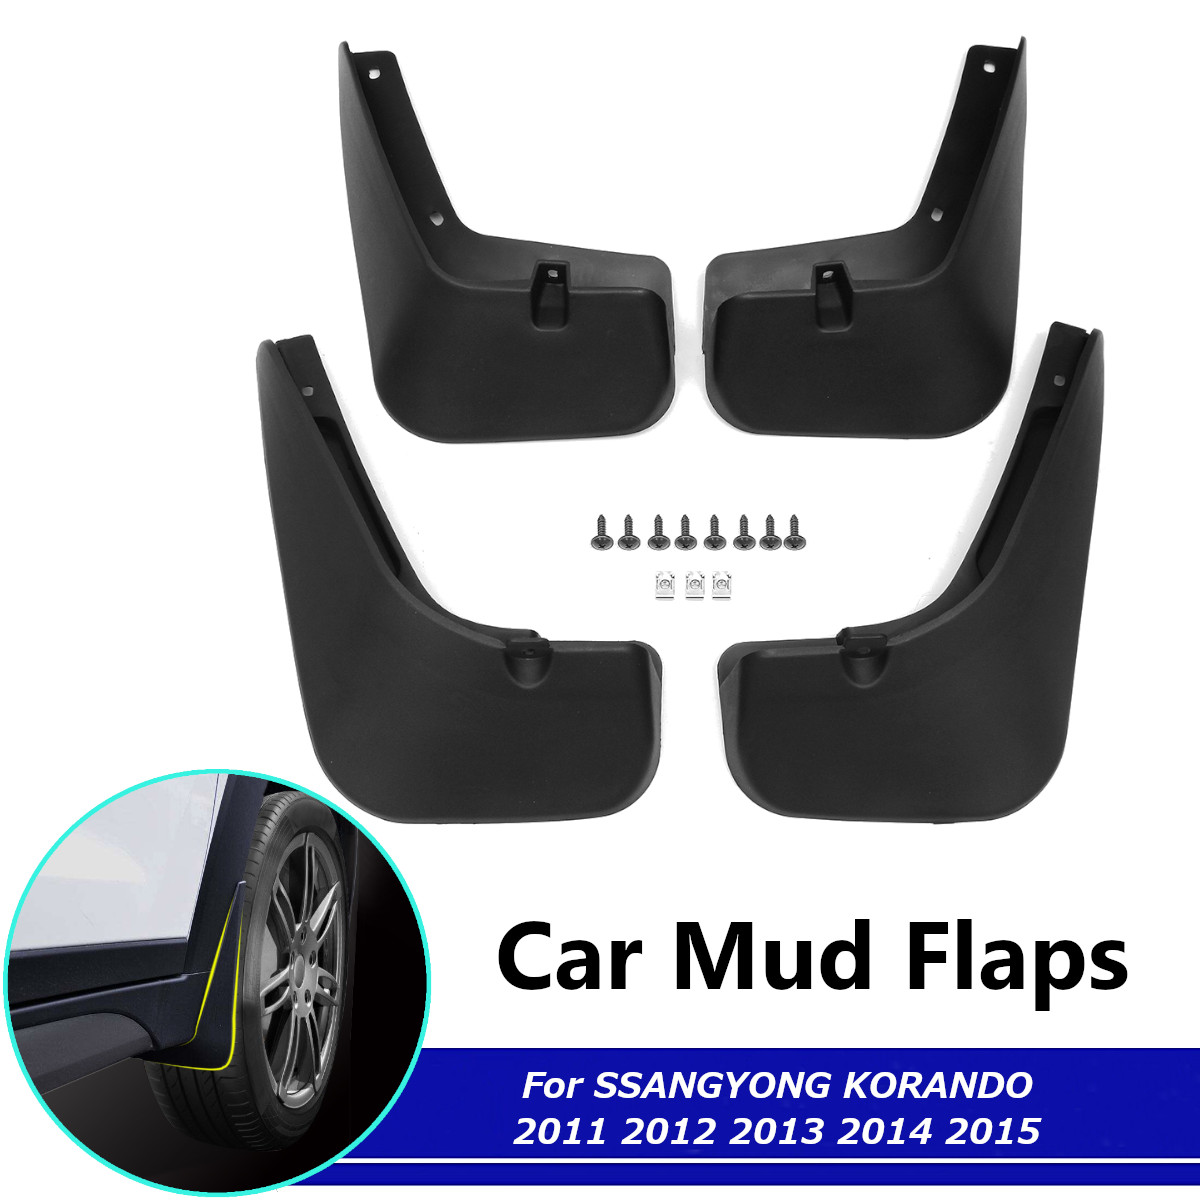 Mud Flaps For SsangYong Korando New Actyon C200 2011-2015 Fender Splash Guards Mudguards Mudflaps Accessories image